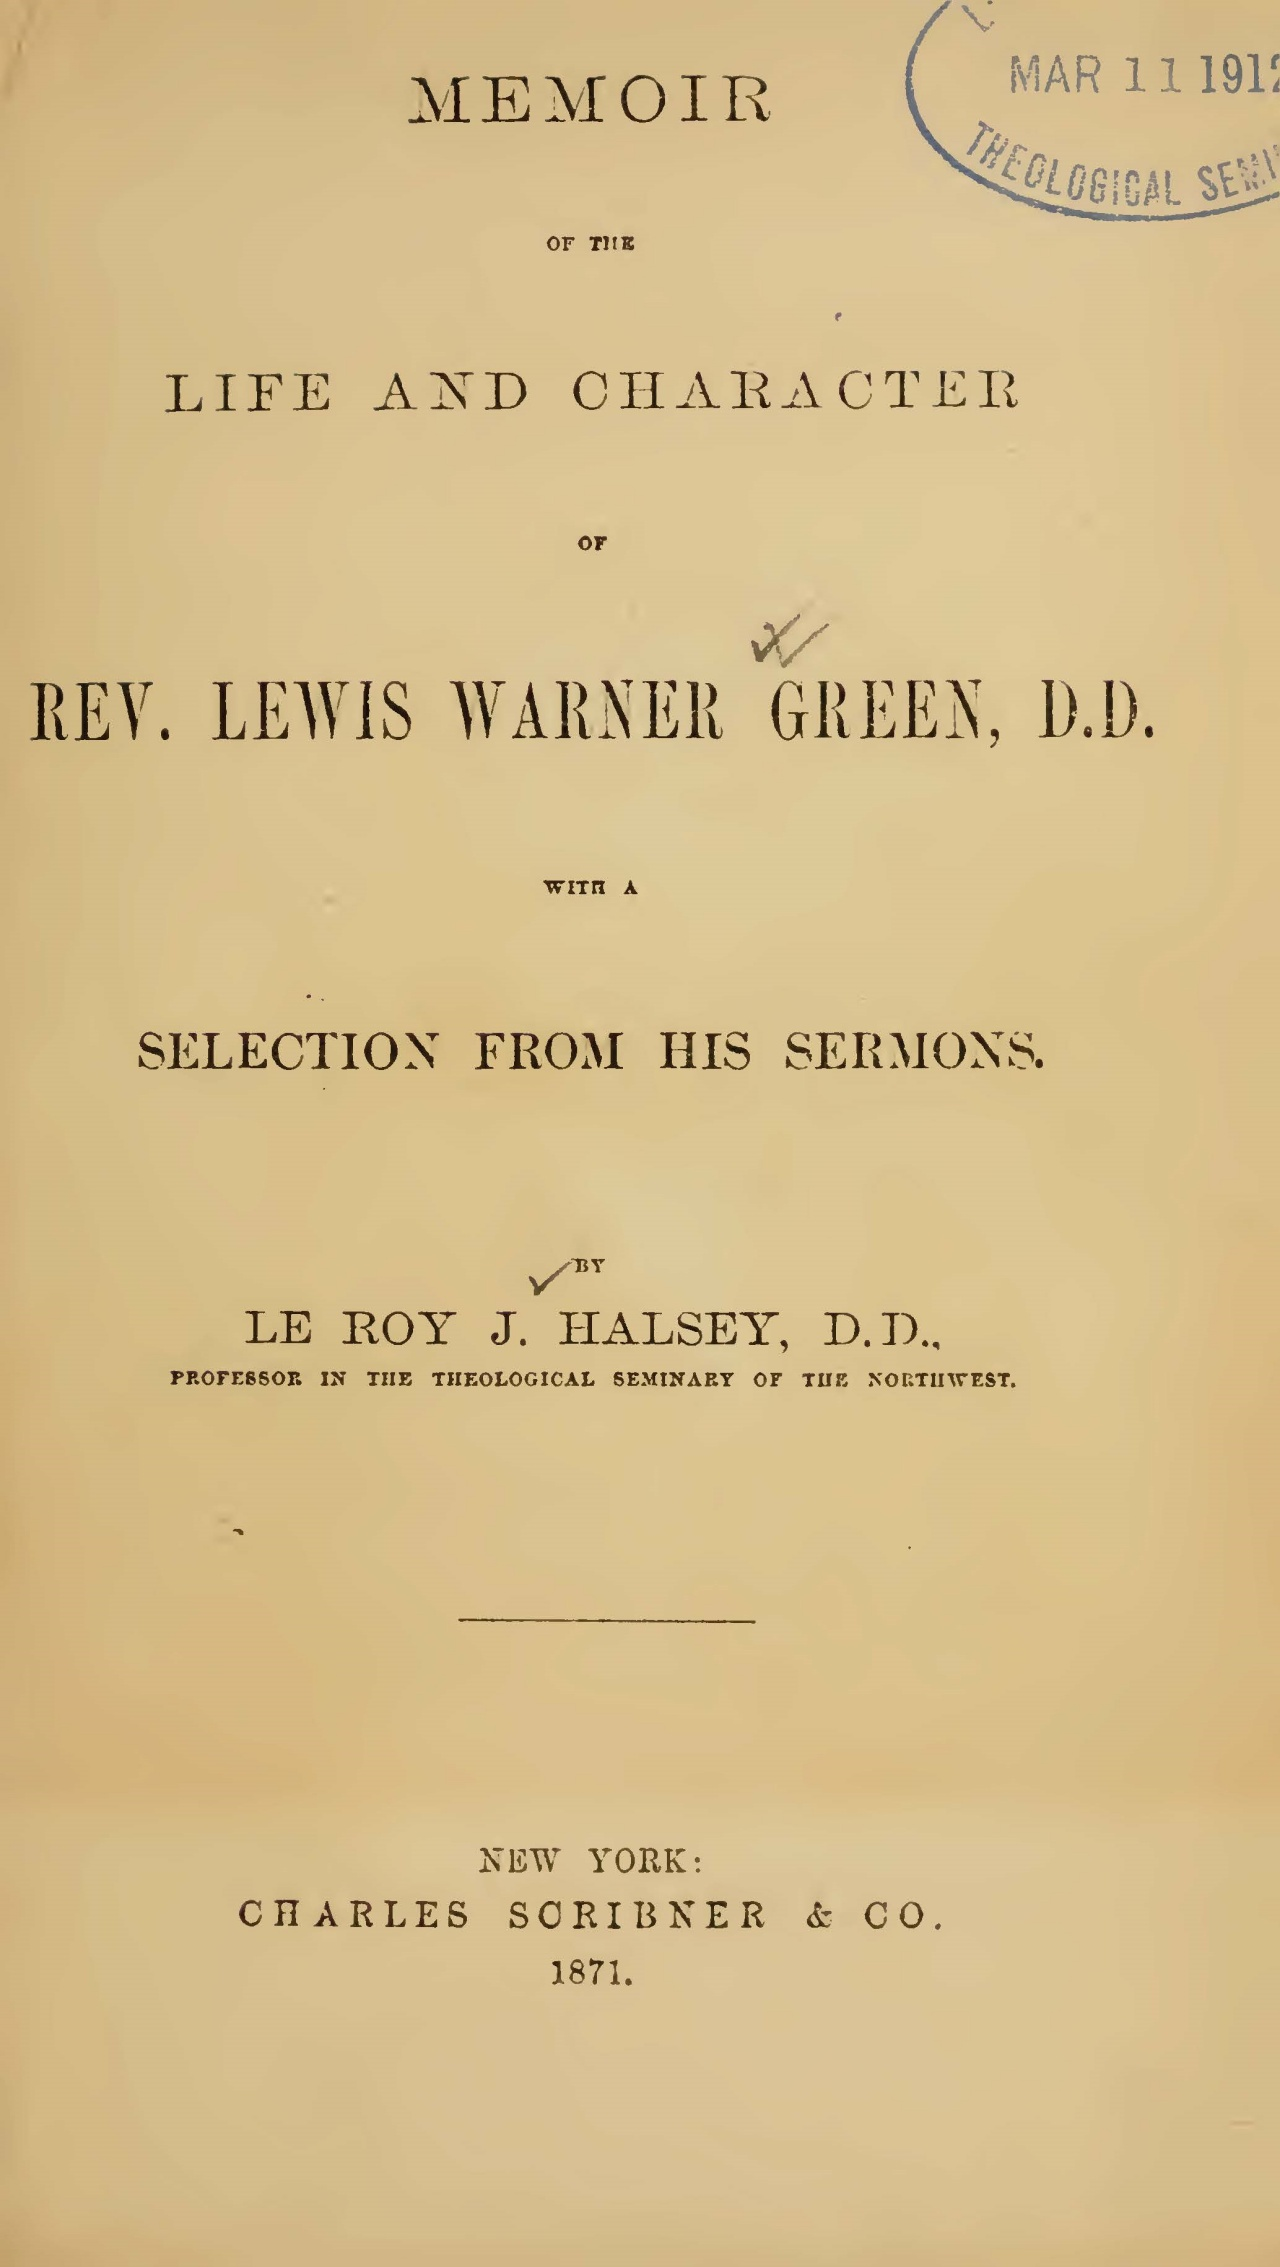 Halsey, Leroy Jones, Memoir of the Life and Character of Rev. Lewis Warner Green Title Page.jpg